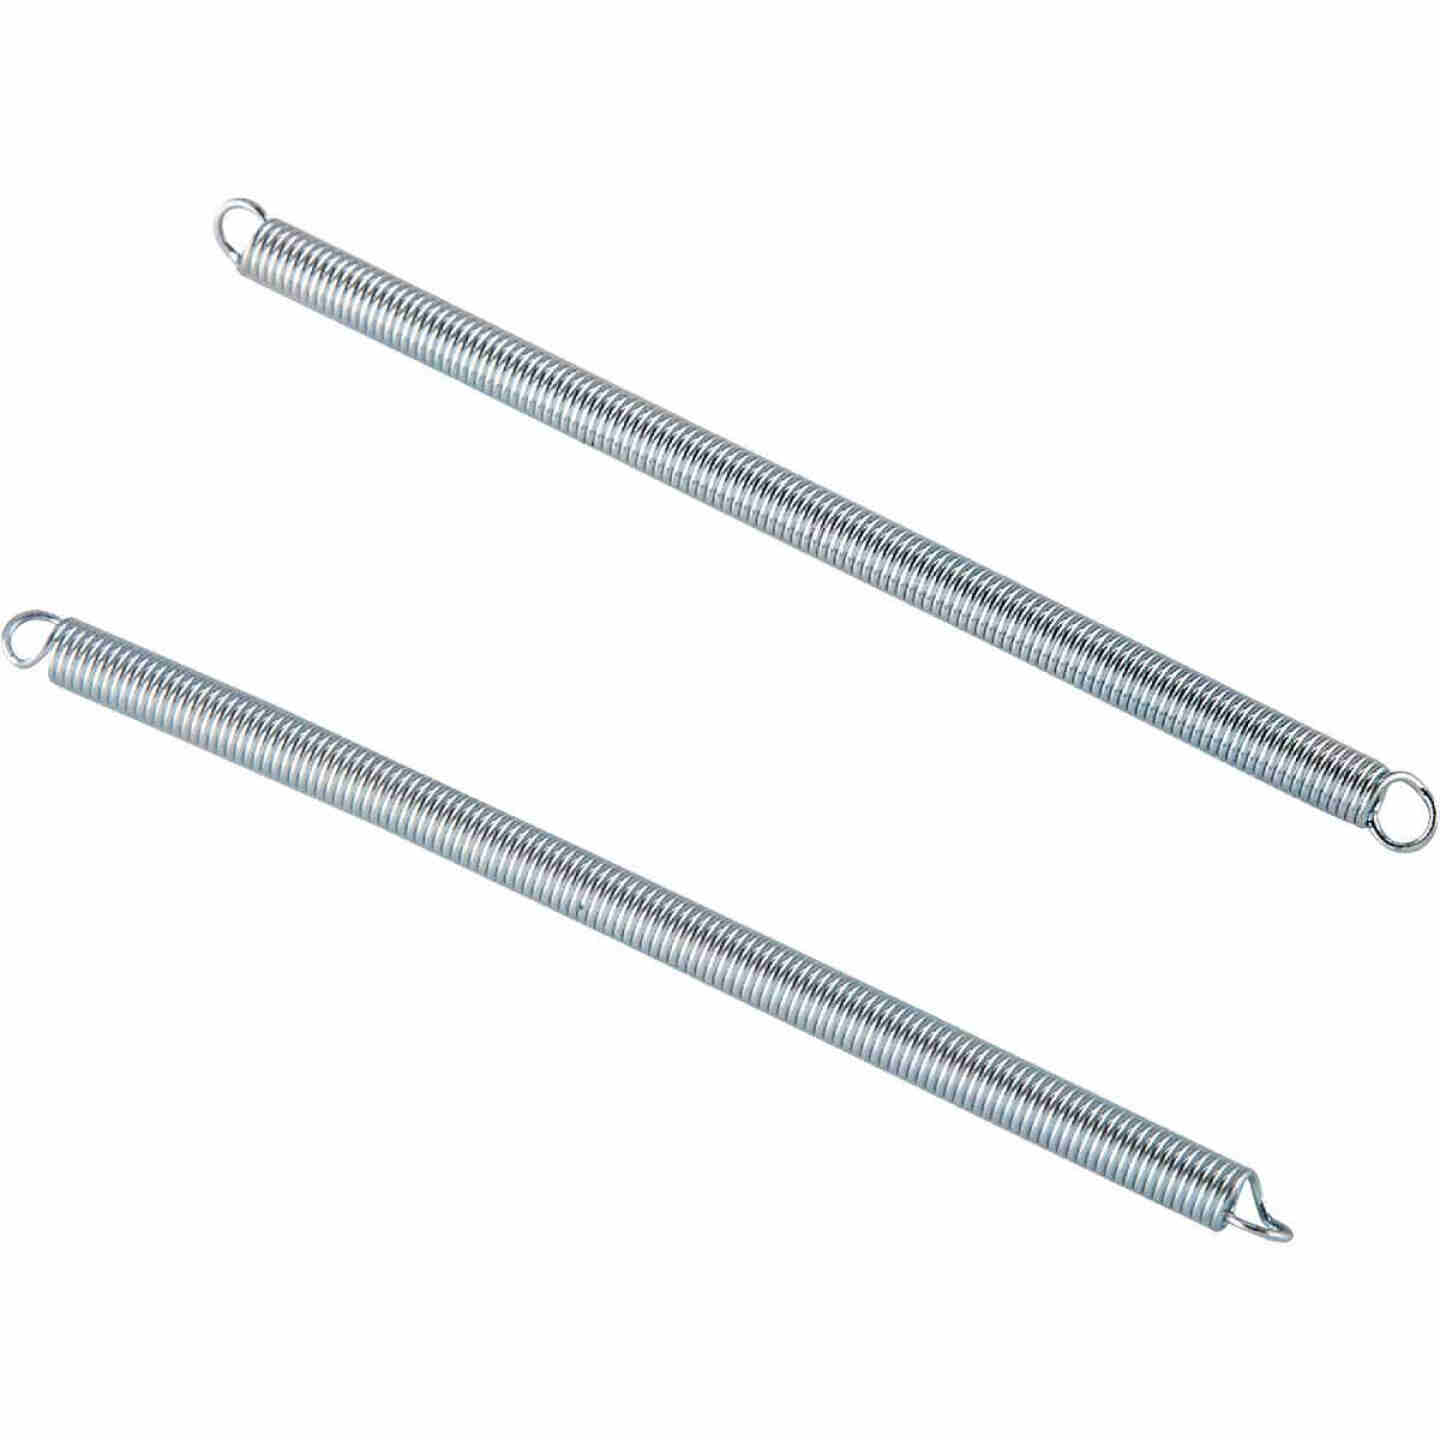 Century Spring 10 In. x 1-1/4 In. Extension Spring (1 Count) Image 1